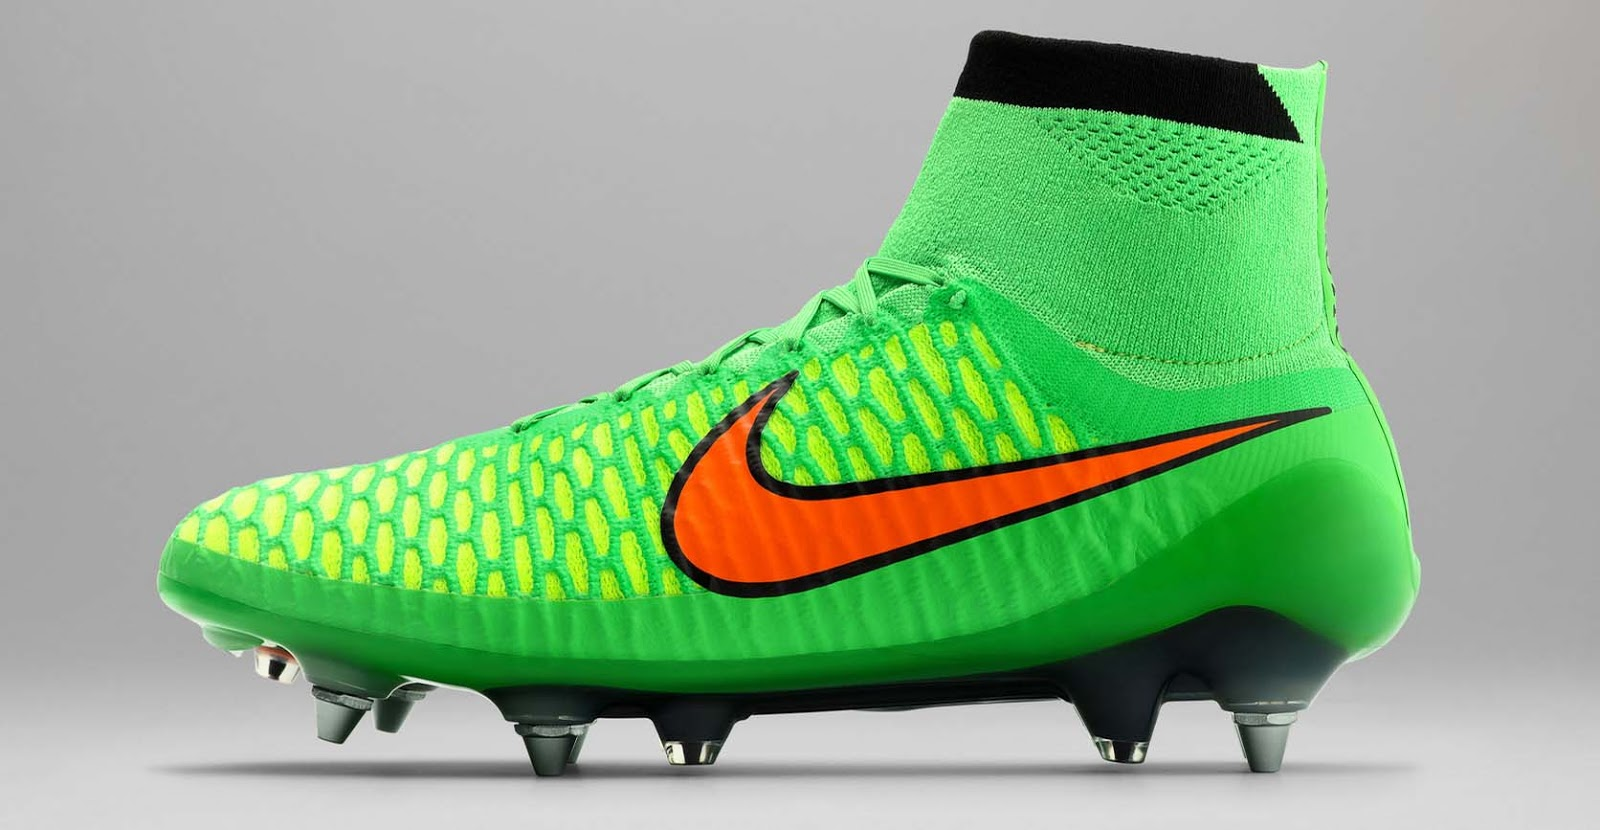 New Nike 2015 Football Boot Colorways